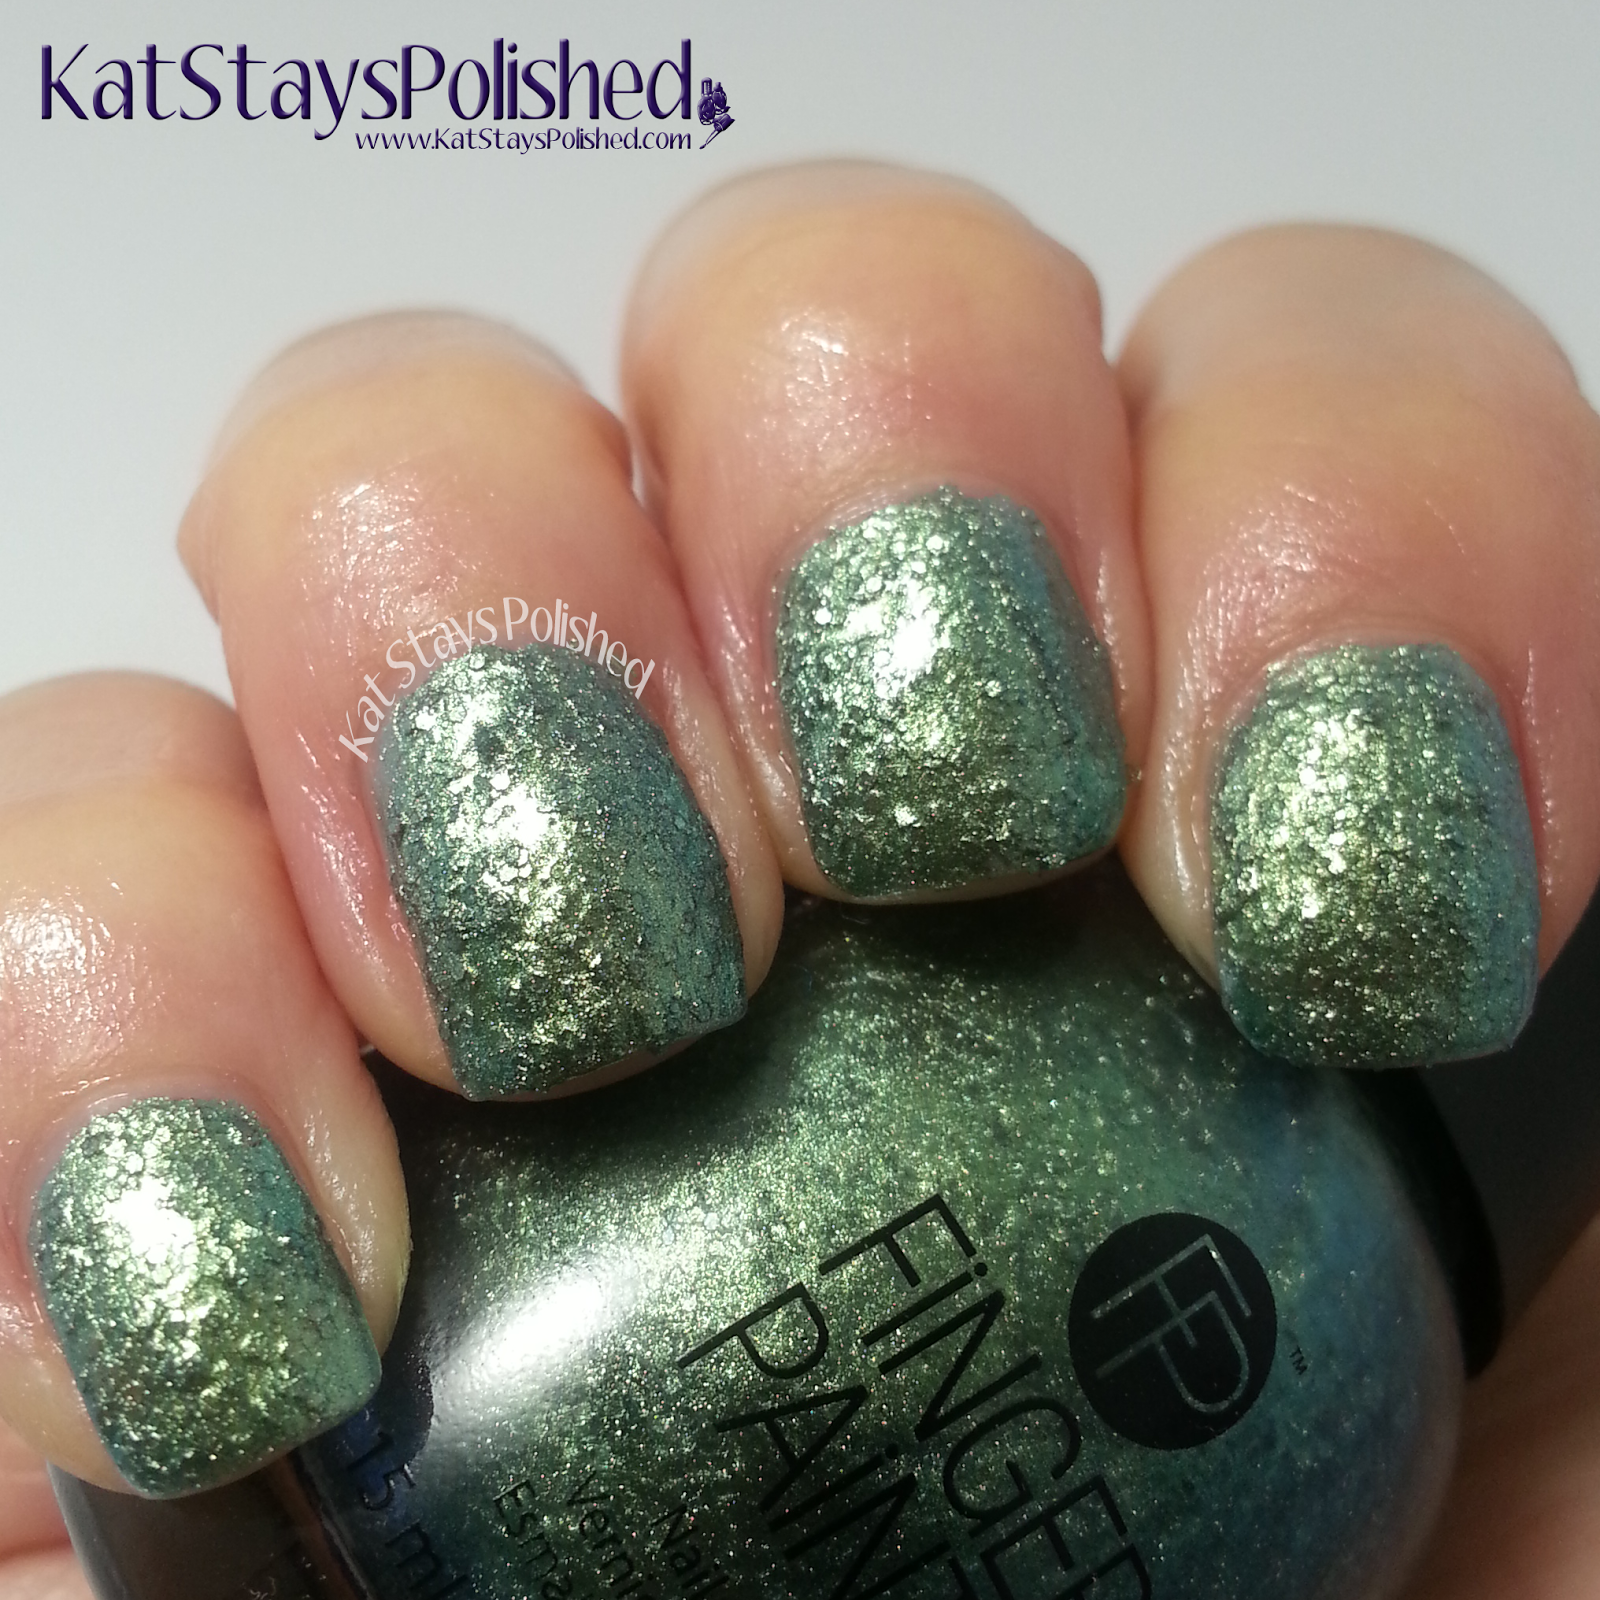 FingerPaints - Enchanted Mermaid 2014 - Underwater Enchantress | Kat Stays Polished